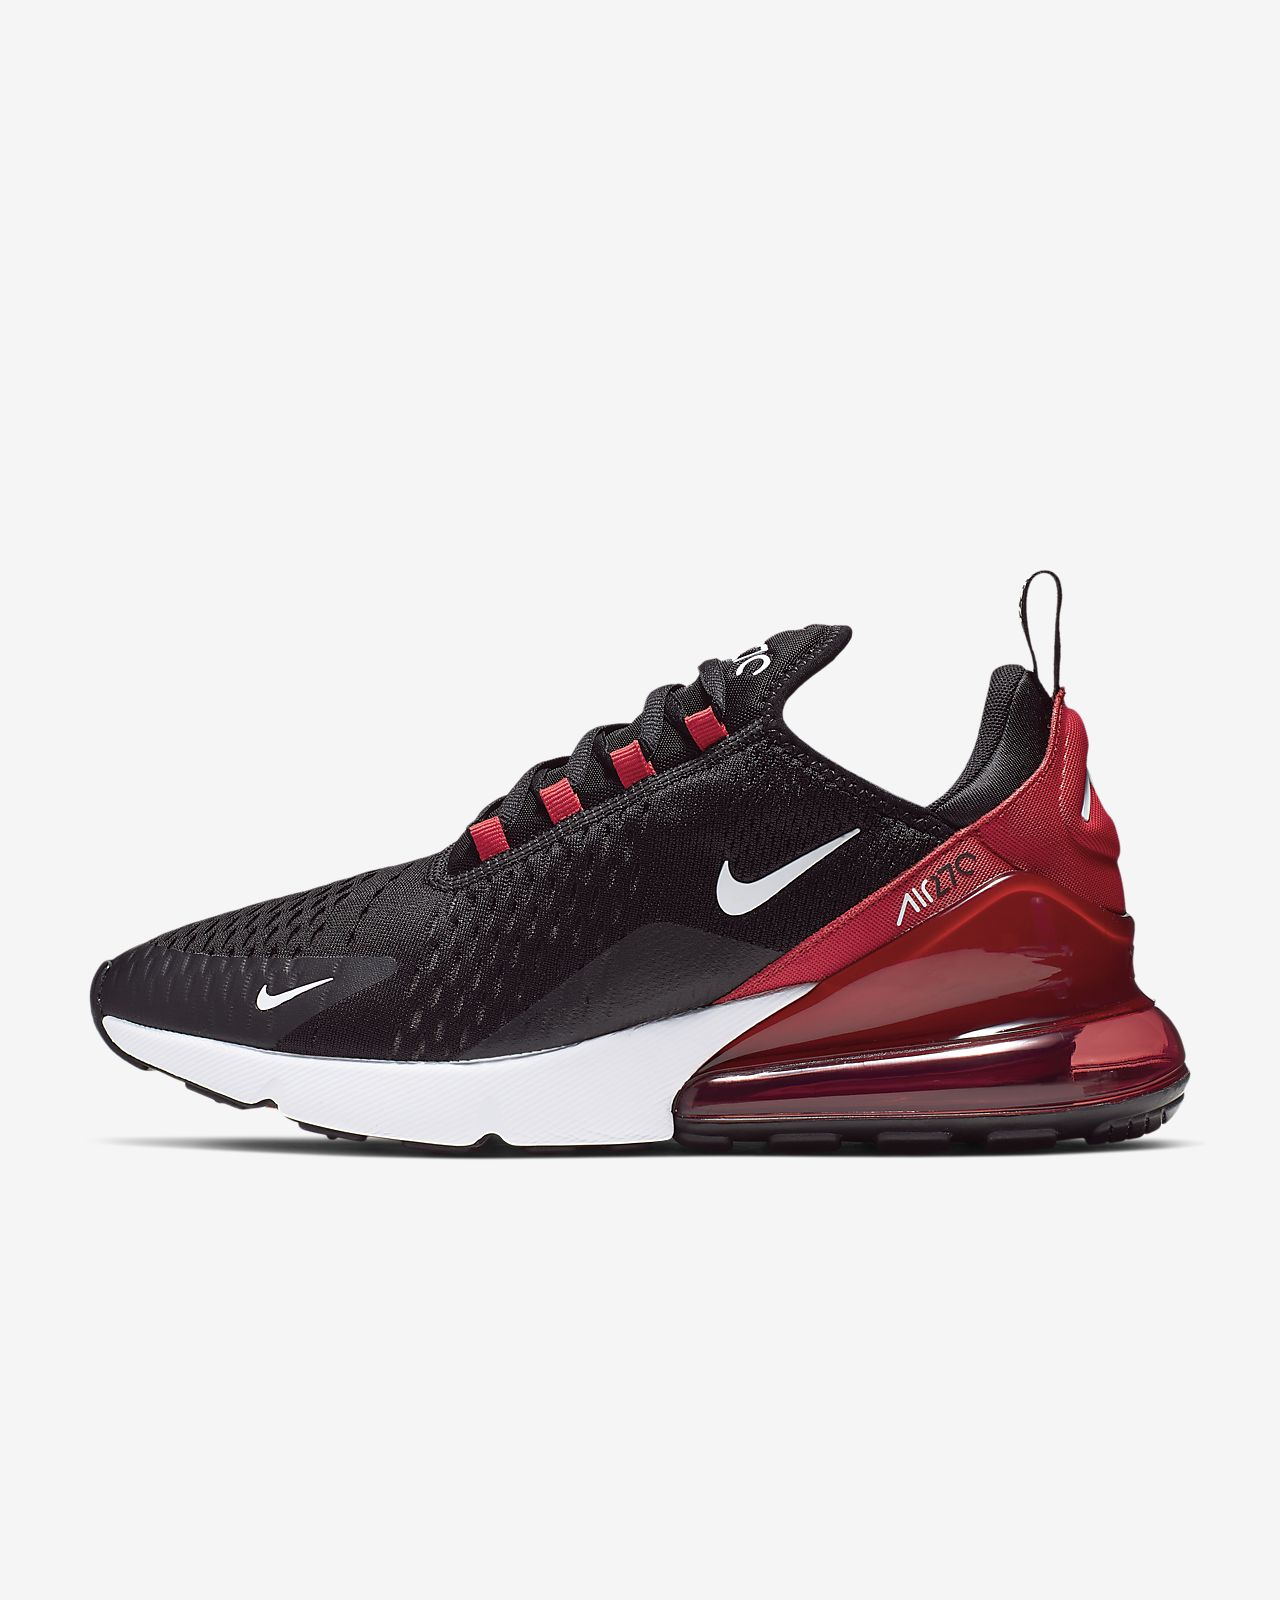 9d3c507bf1e74 Nike Air Max 270 Men s Shoe. Nike.com GB